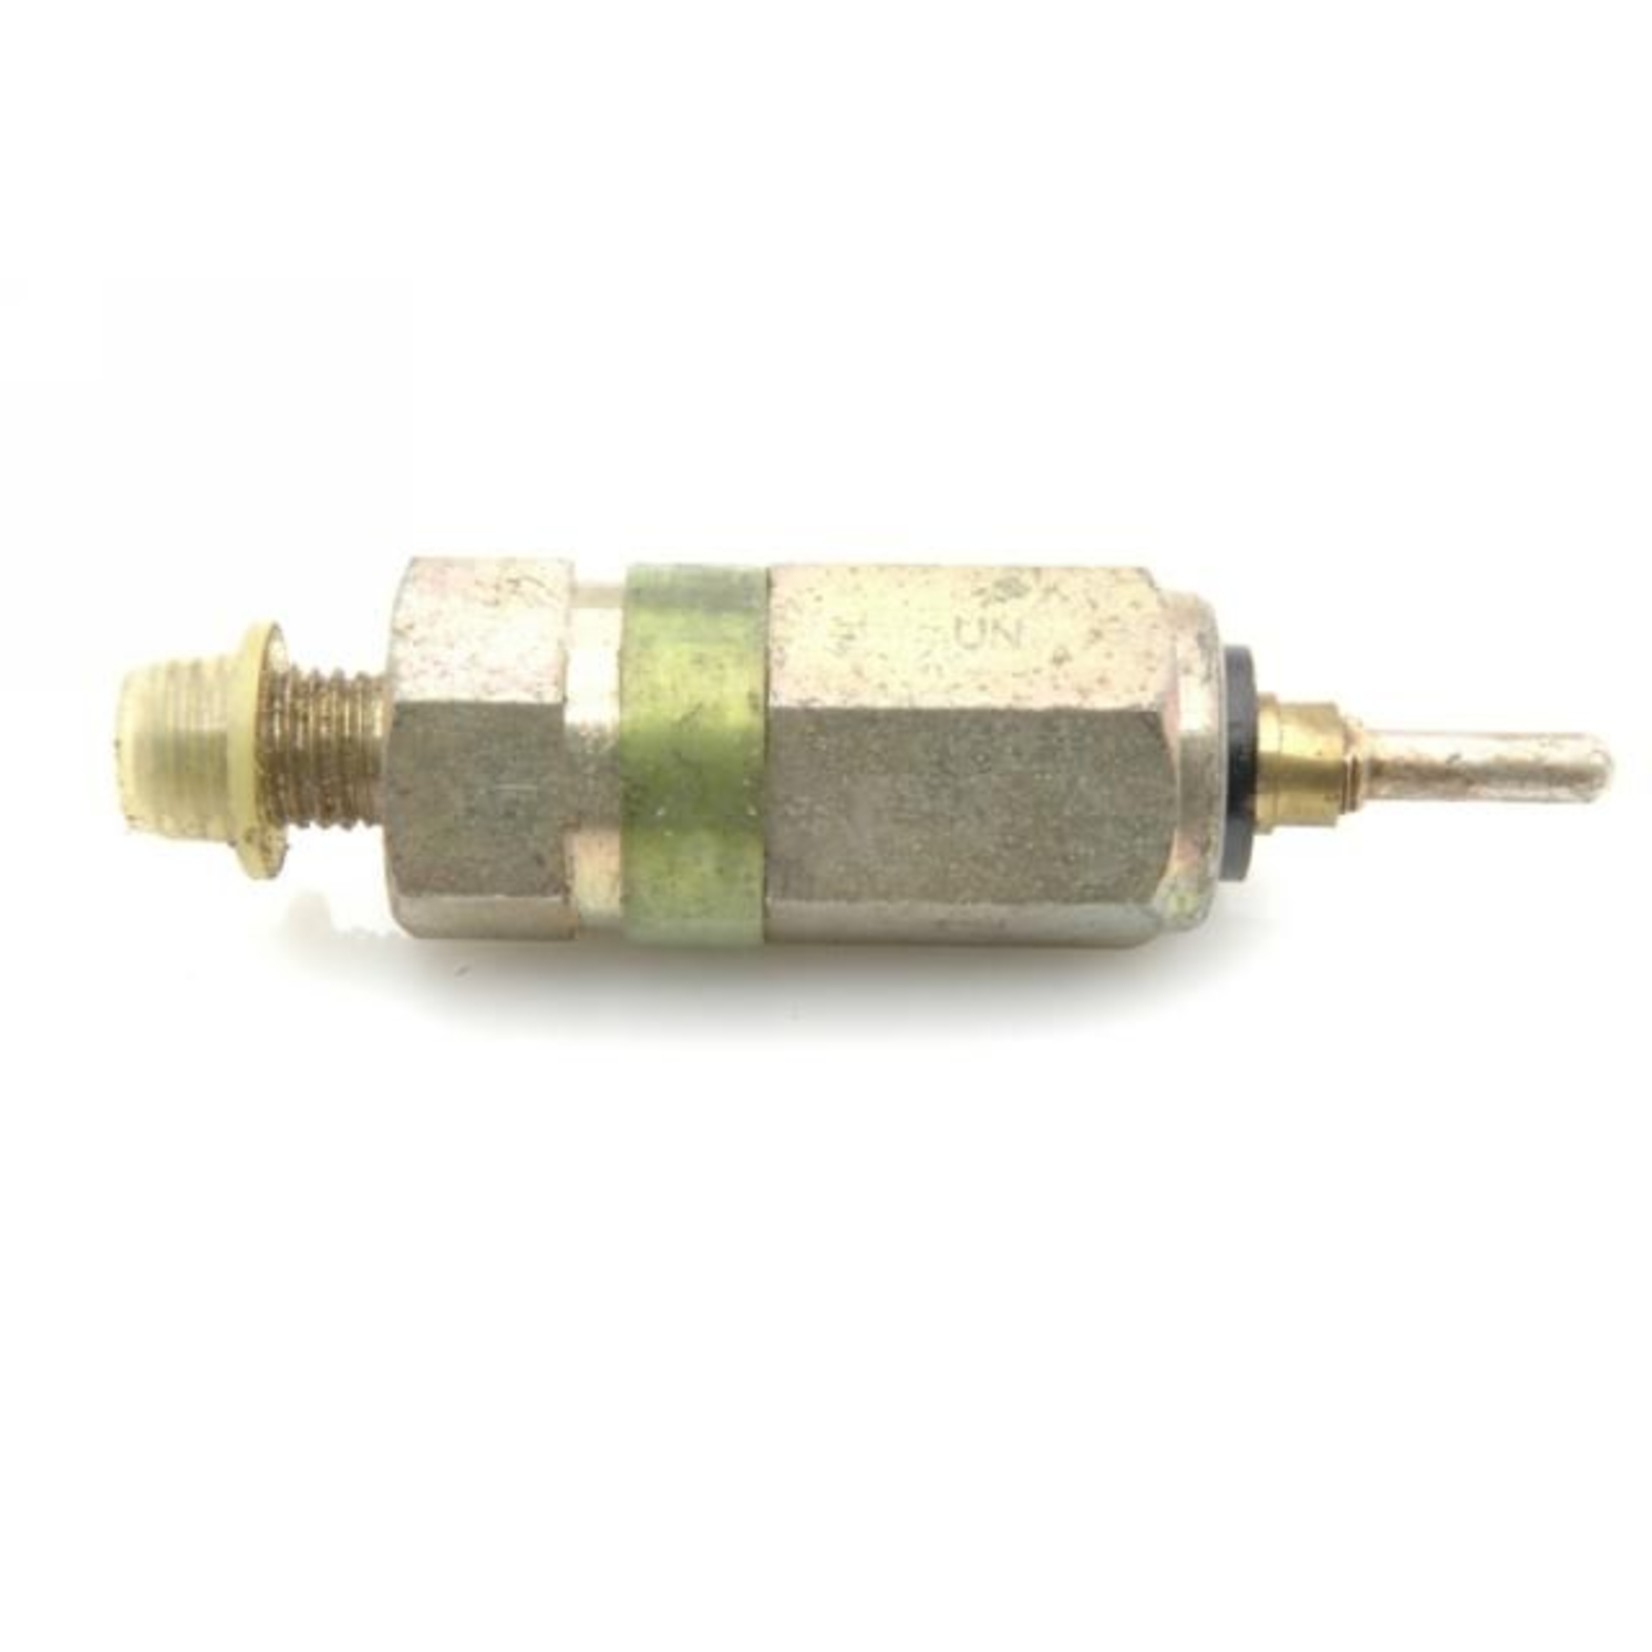 Pressure switch LHM safety valve LHM Nr Org: 5403326